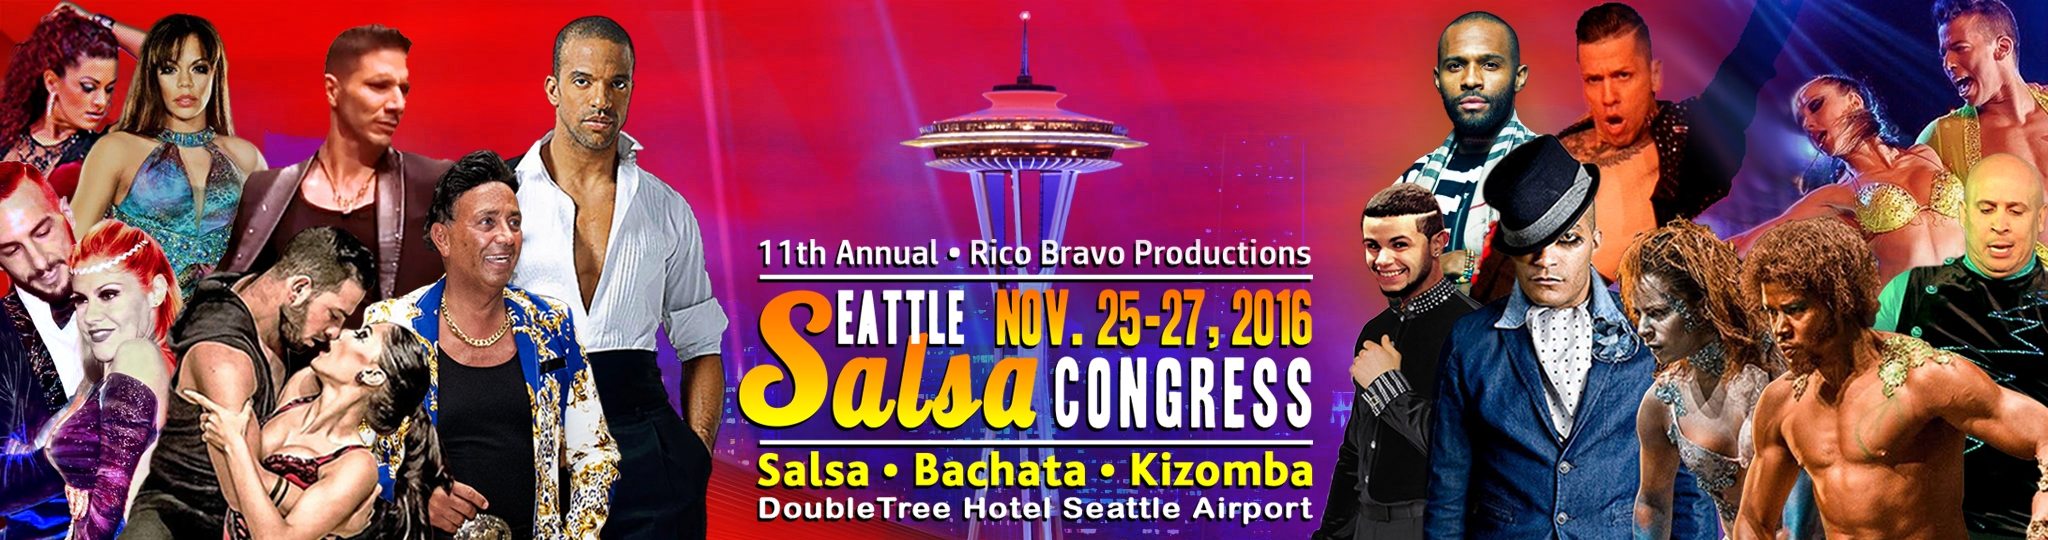 seattle-salsa-congress-guide-to-salsa-bachata-festivals-around-the-world